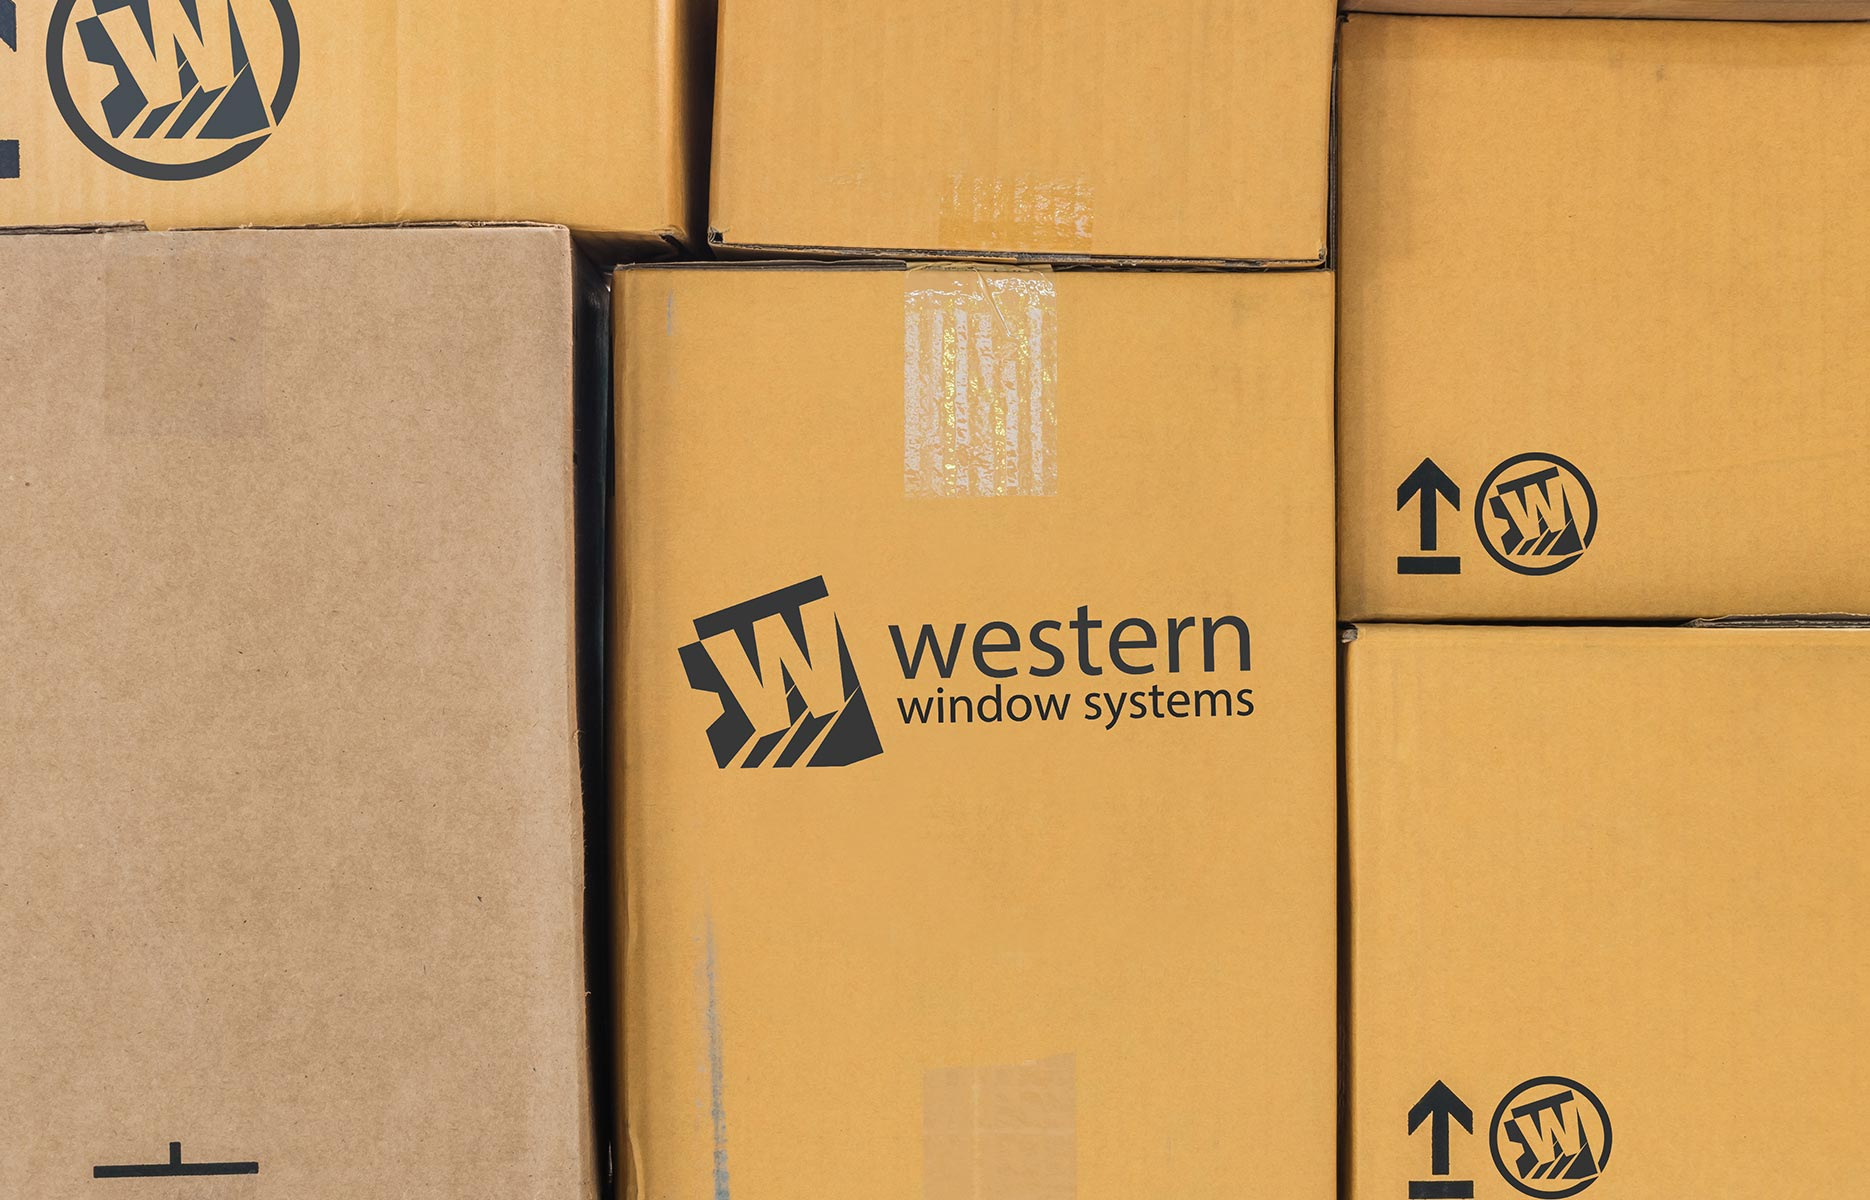 Updated: Western Window Systems Announces Relocation to Expanded Facility